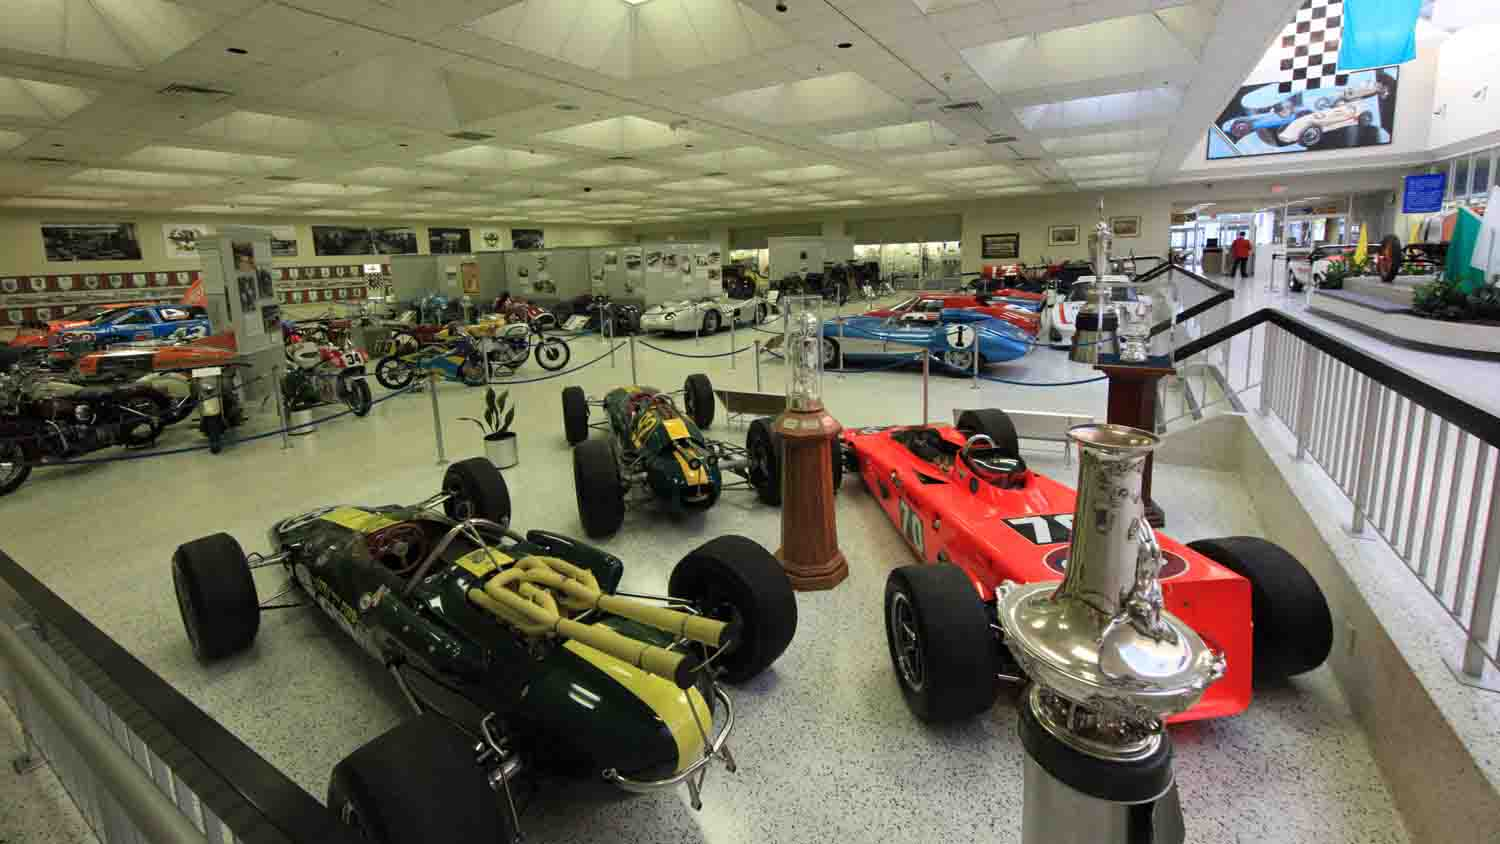 Indianapolis Motor Speedway Hall of Fame Museum 2